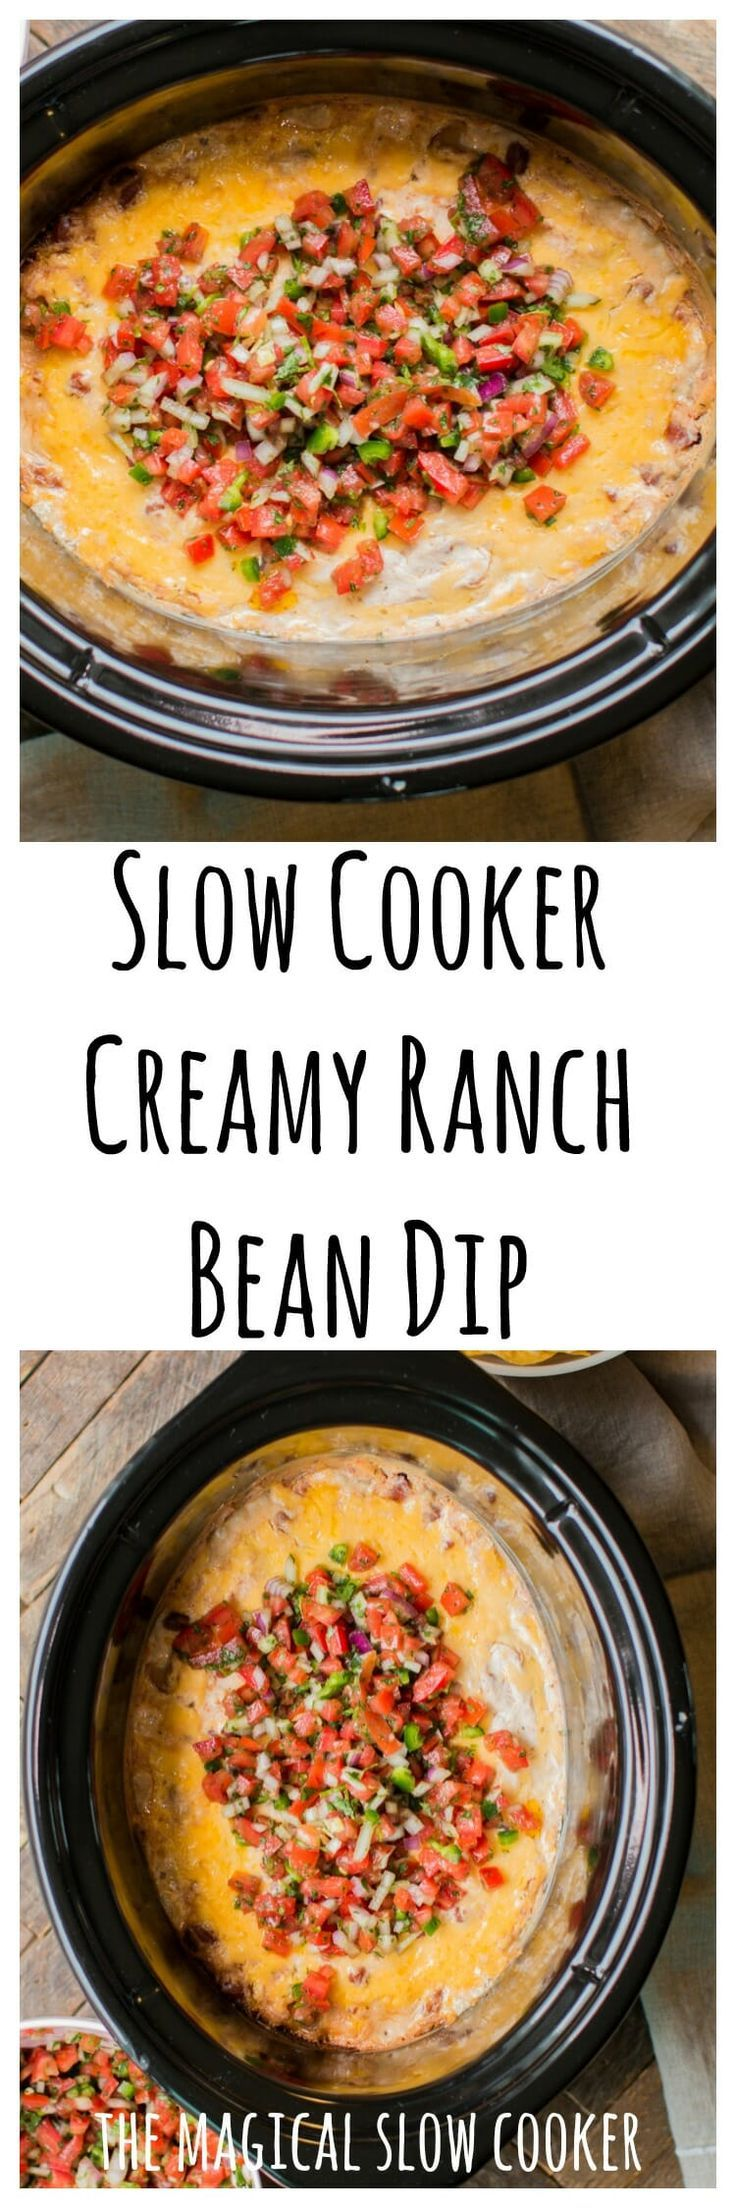 Slow Cooker Creamy Ranch Bean Dip #gameday #beandip #crockpot